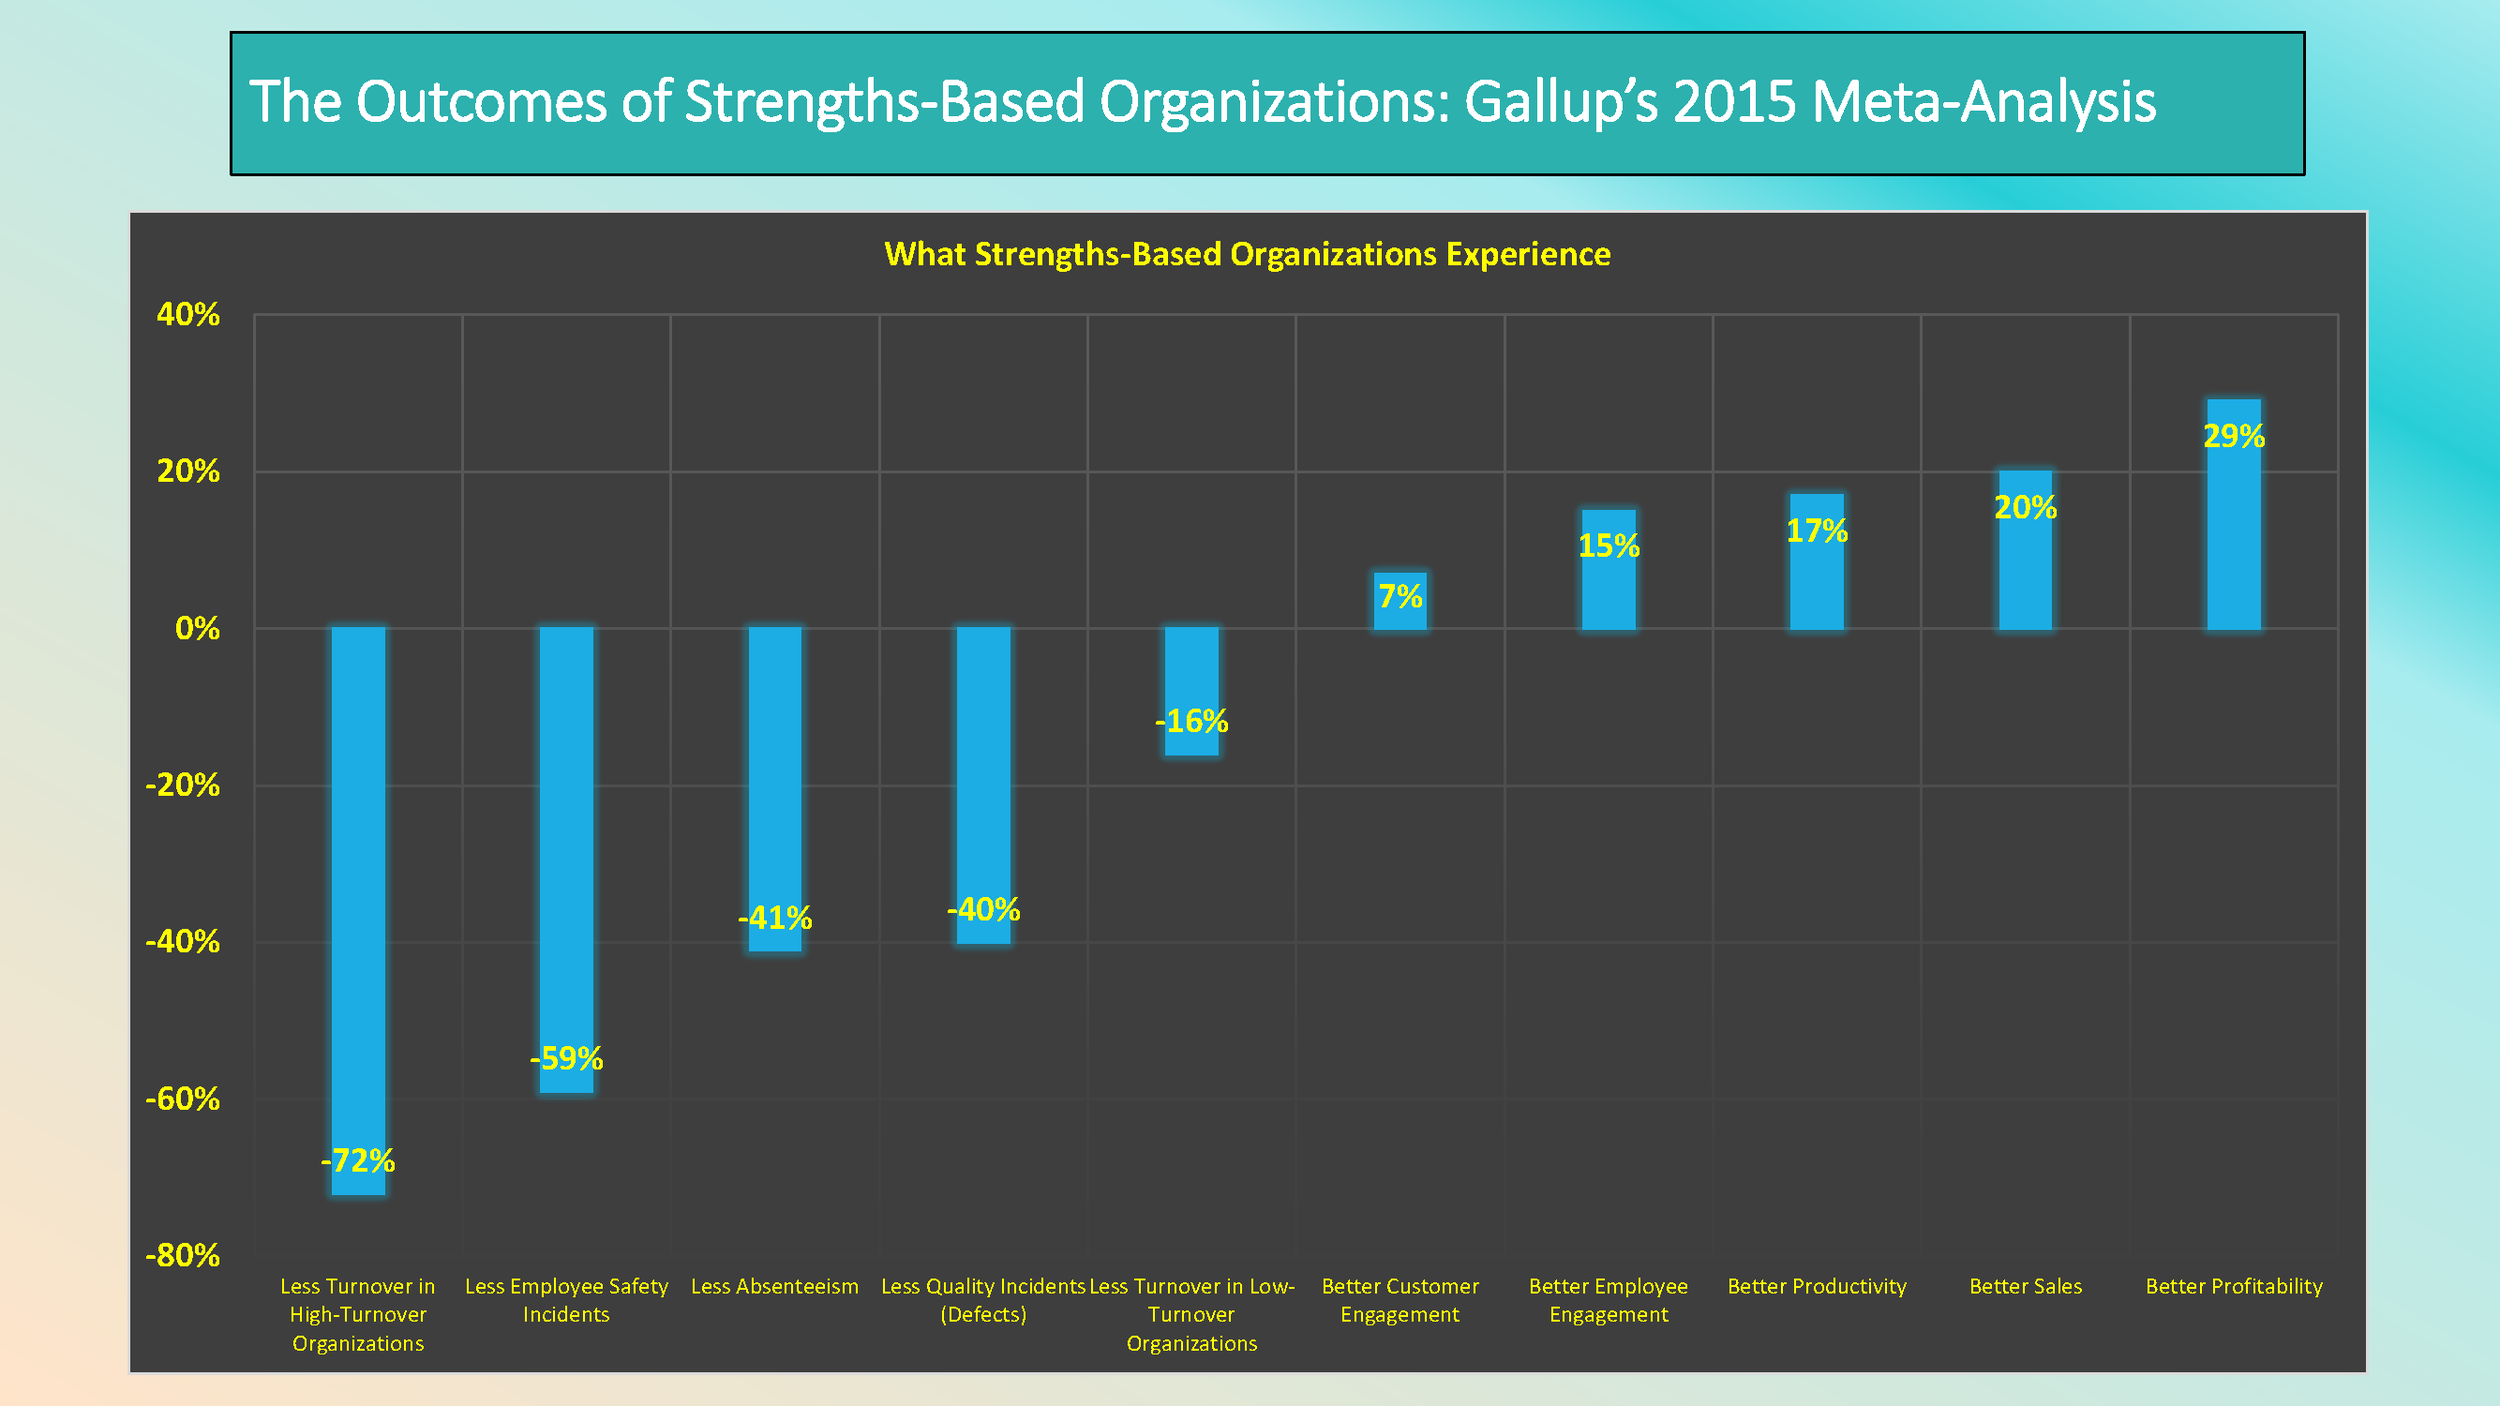 The Outcomes for Strengths-Based Organizations (Gallup's 2015 Meta-Analysis)